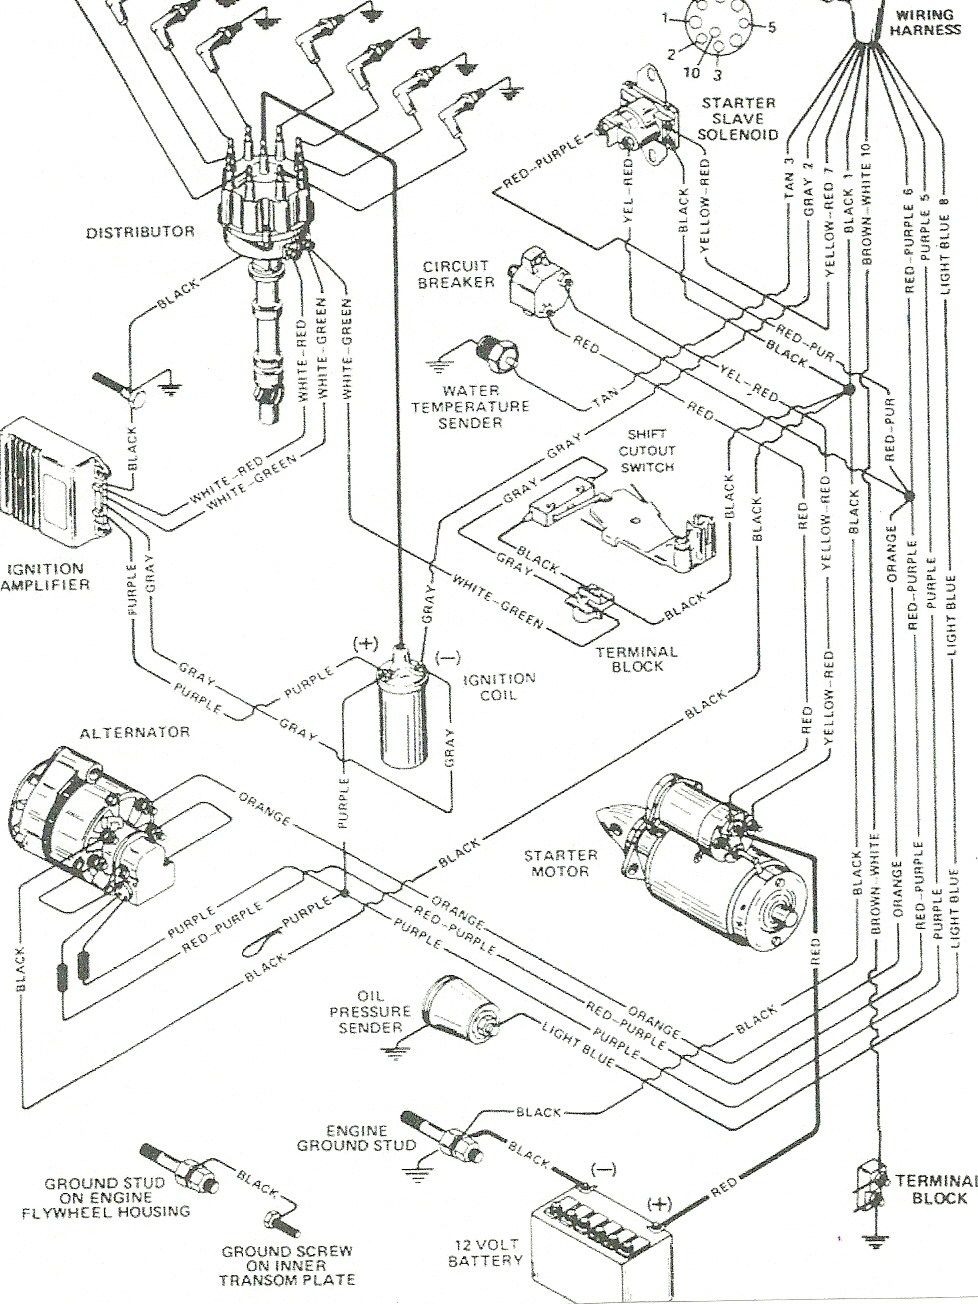 Mercruiser Electrical System Wiring Diagrams | Wiring Diagram on